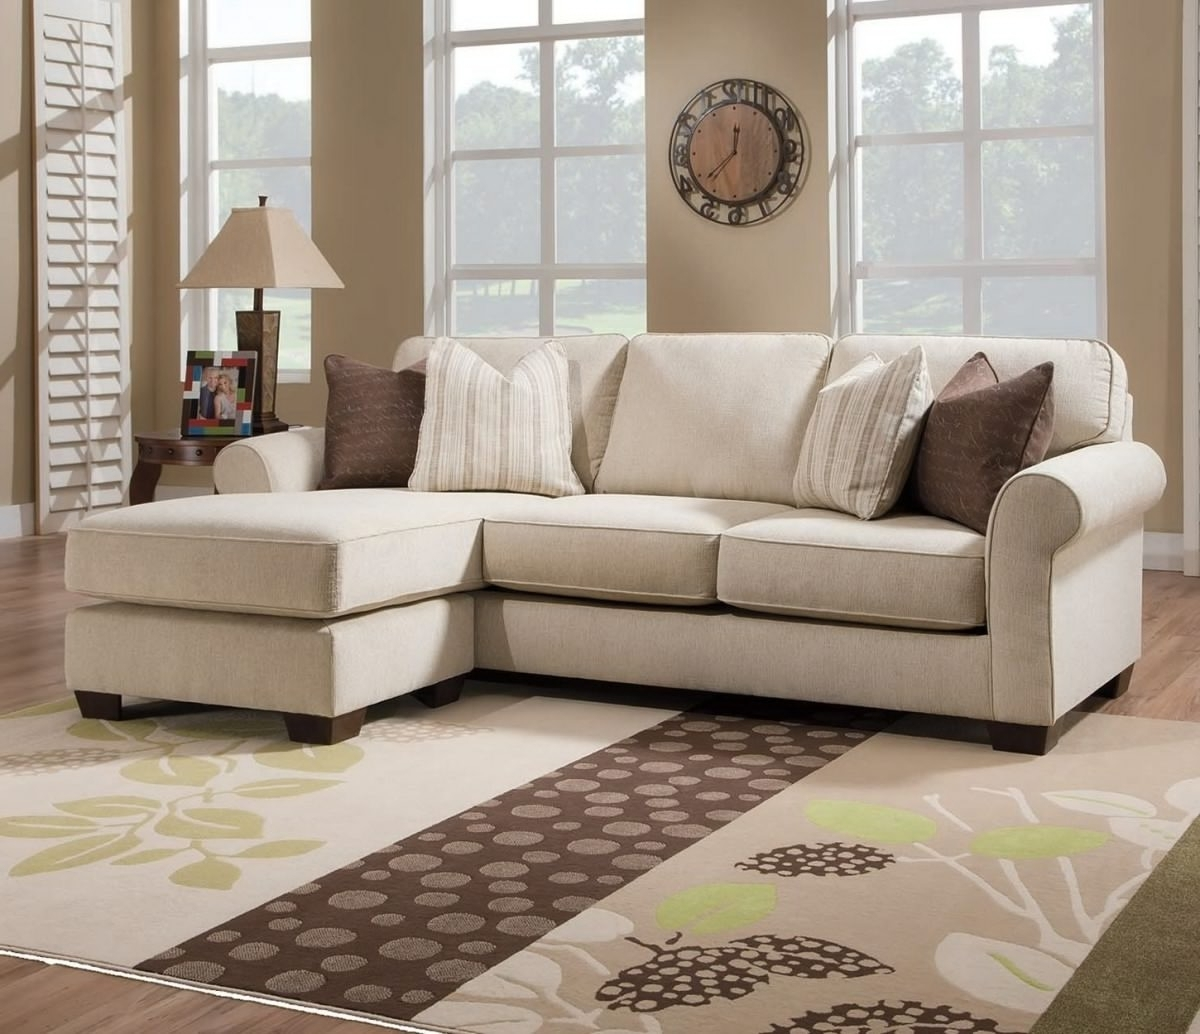 Well Liked Inexpensive Sectional Sofas For Small Spaces Intended For Sectional Sofa Design: Sectional Sofas Small Spaces Armless (View 6 of 20)